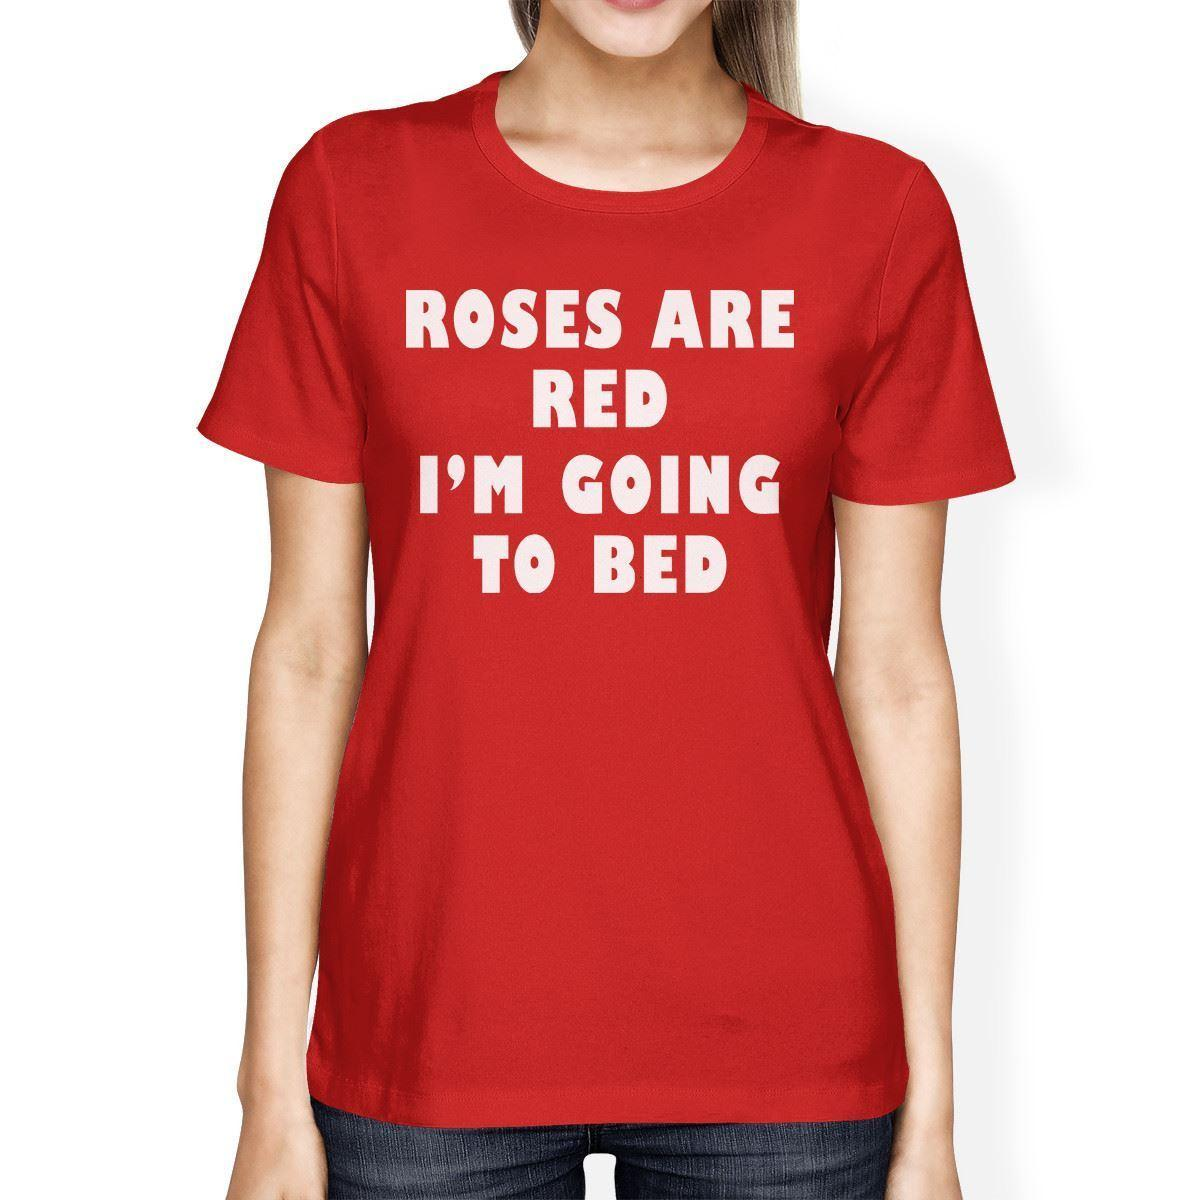 44470f30f95e Women's Tee Roses Are Red Women's Red T-shirt Short Sleeve Funny Graphic Tee  Printed Funny T Shirt Hip Hop Cotton Plus Size Top Tee